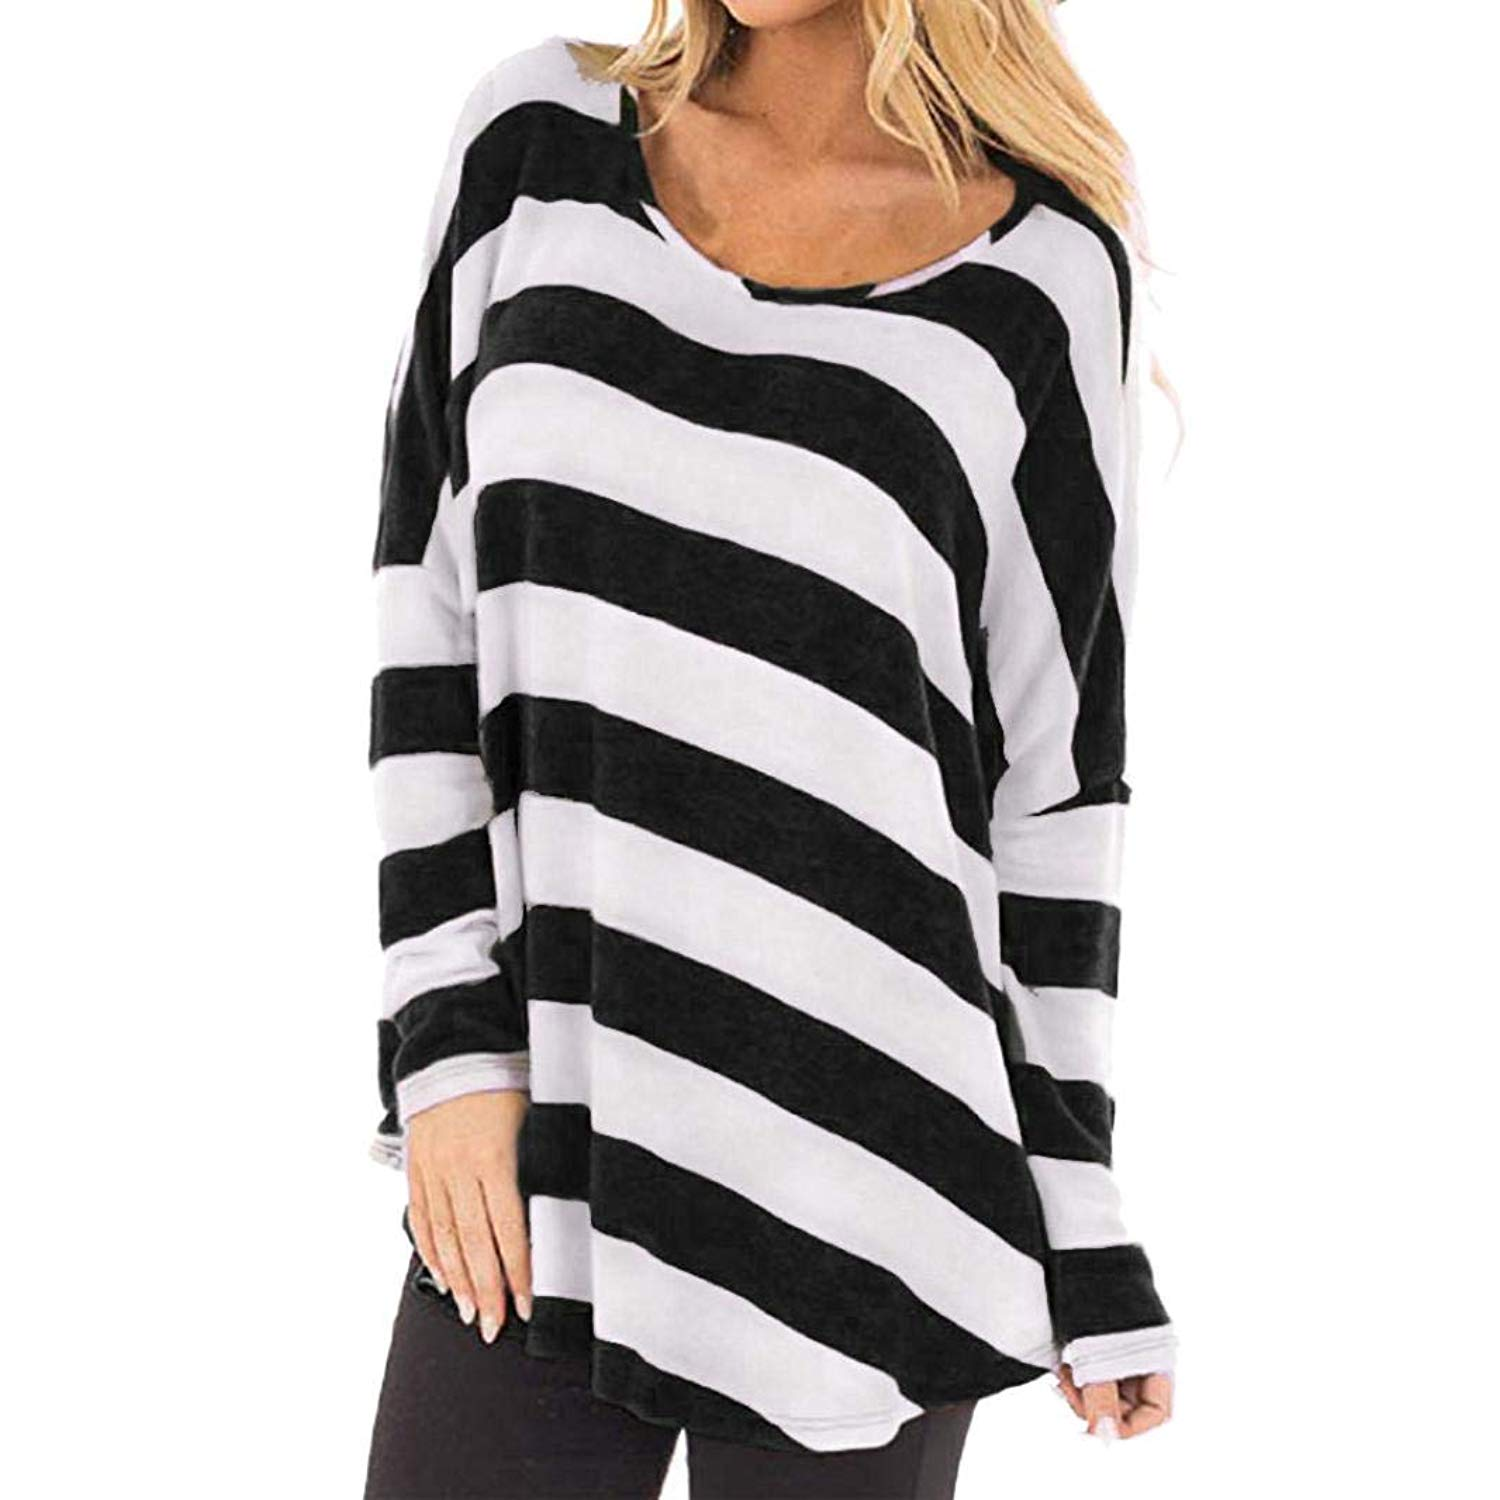 4762a83f033 Get Quotations · UONQD Women s Long Sleeve Striped Crop Top Tee T Shirts  Blouse